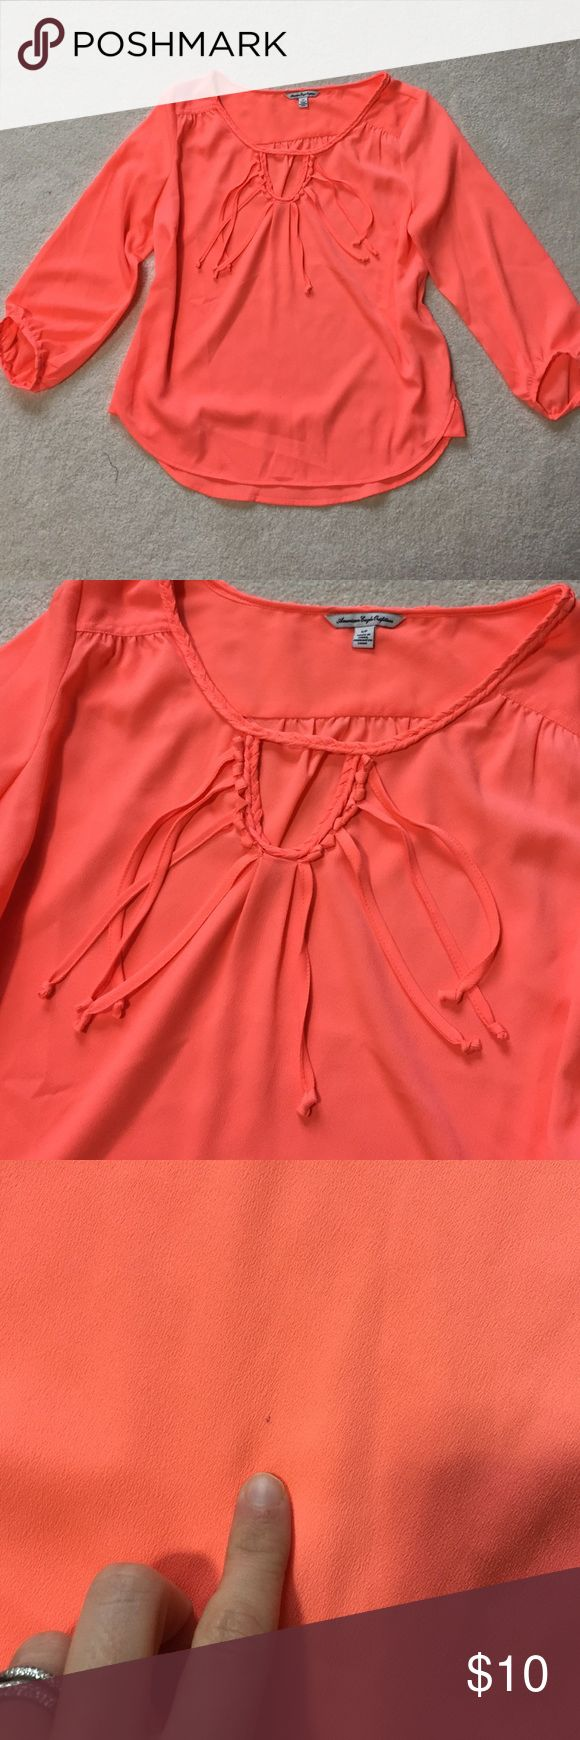 American Eagle Neon Orange fringe blouse size S American Eagle neon orange fringe blouse in size Small. There is a small mark on the front. Looks like a pencil mark. If you look at the 3rd picture you can see it there. American Eagle Outfitters Tops Blouses